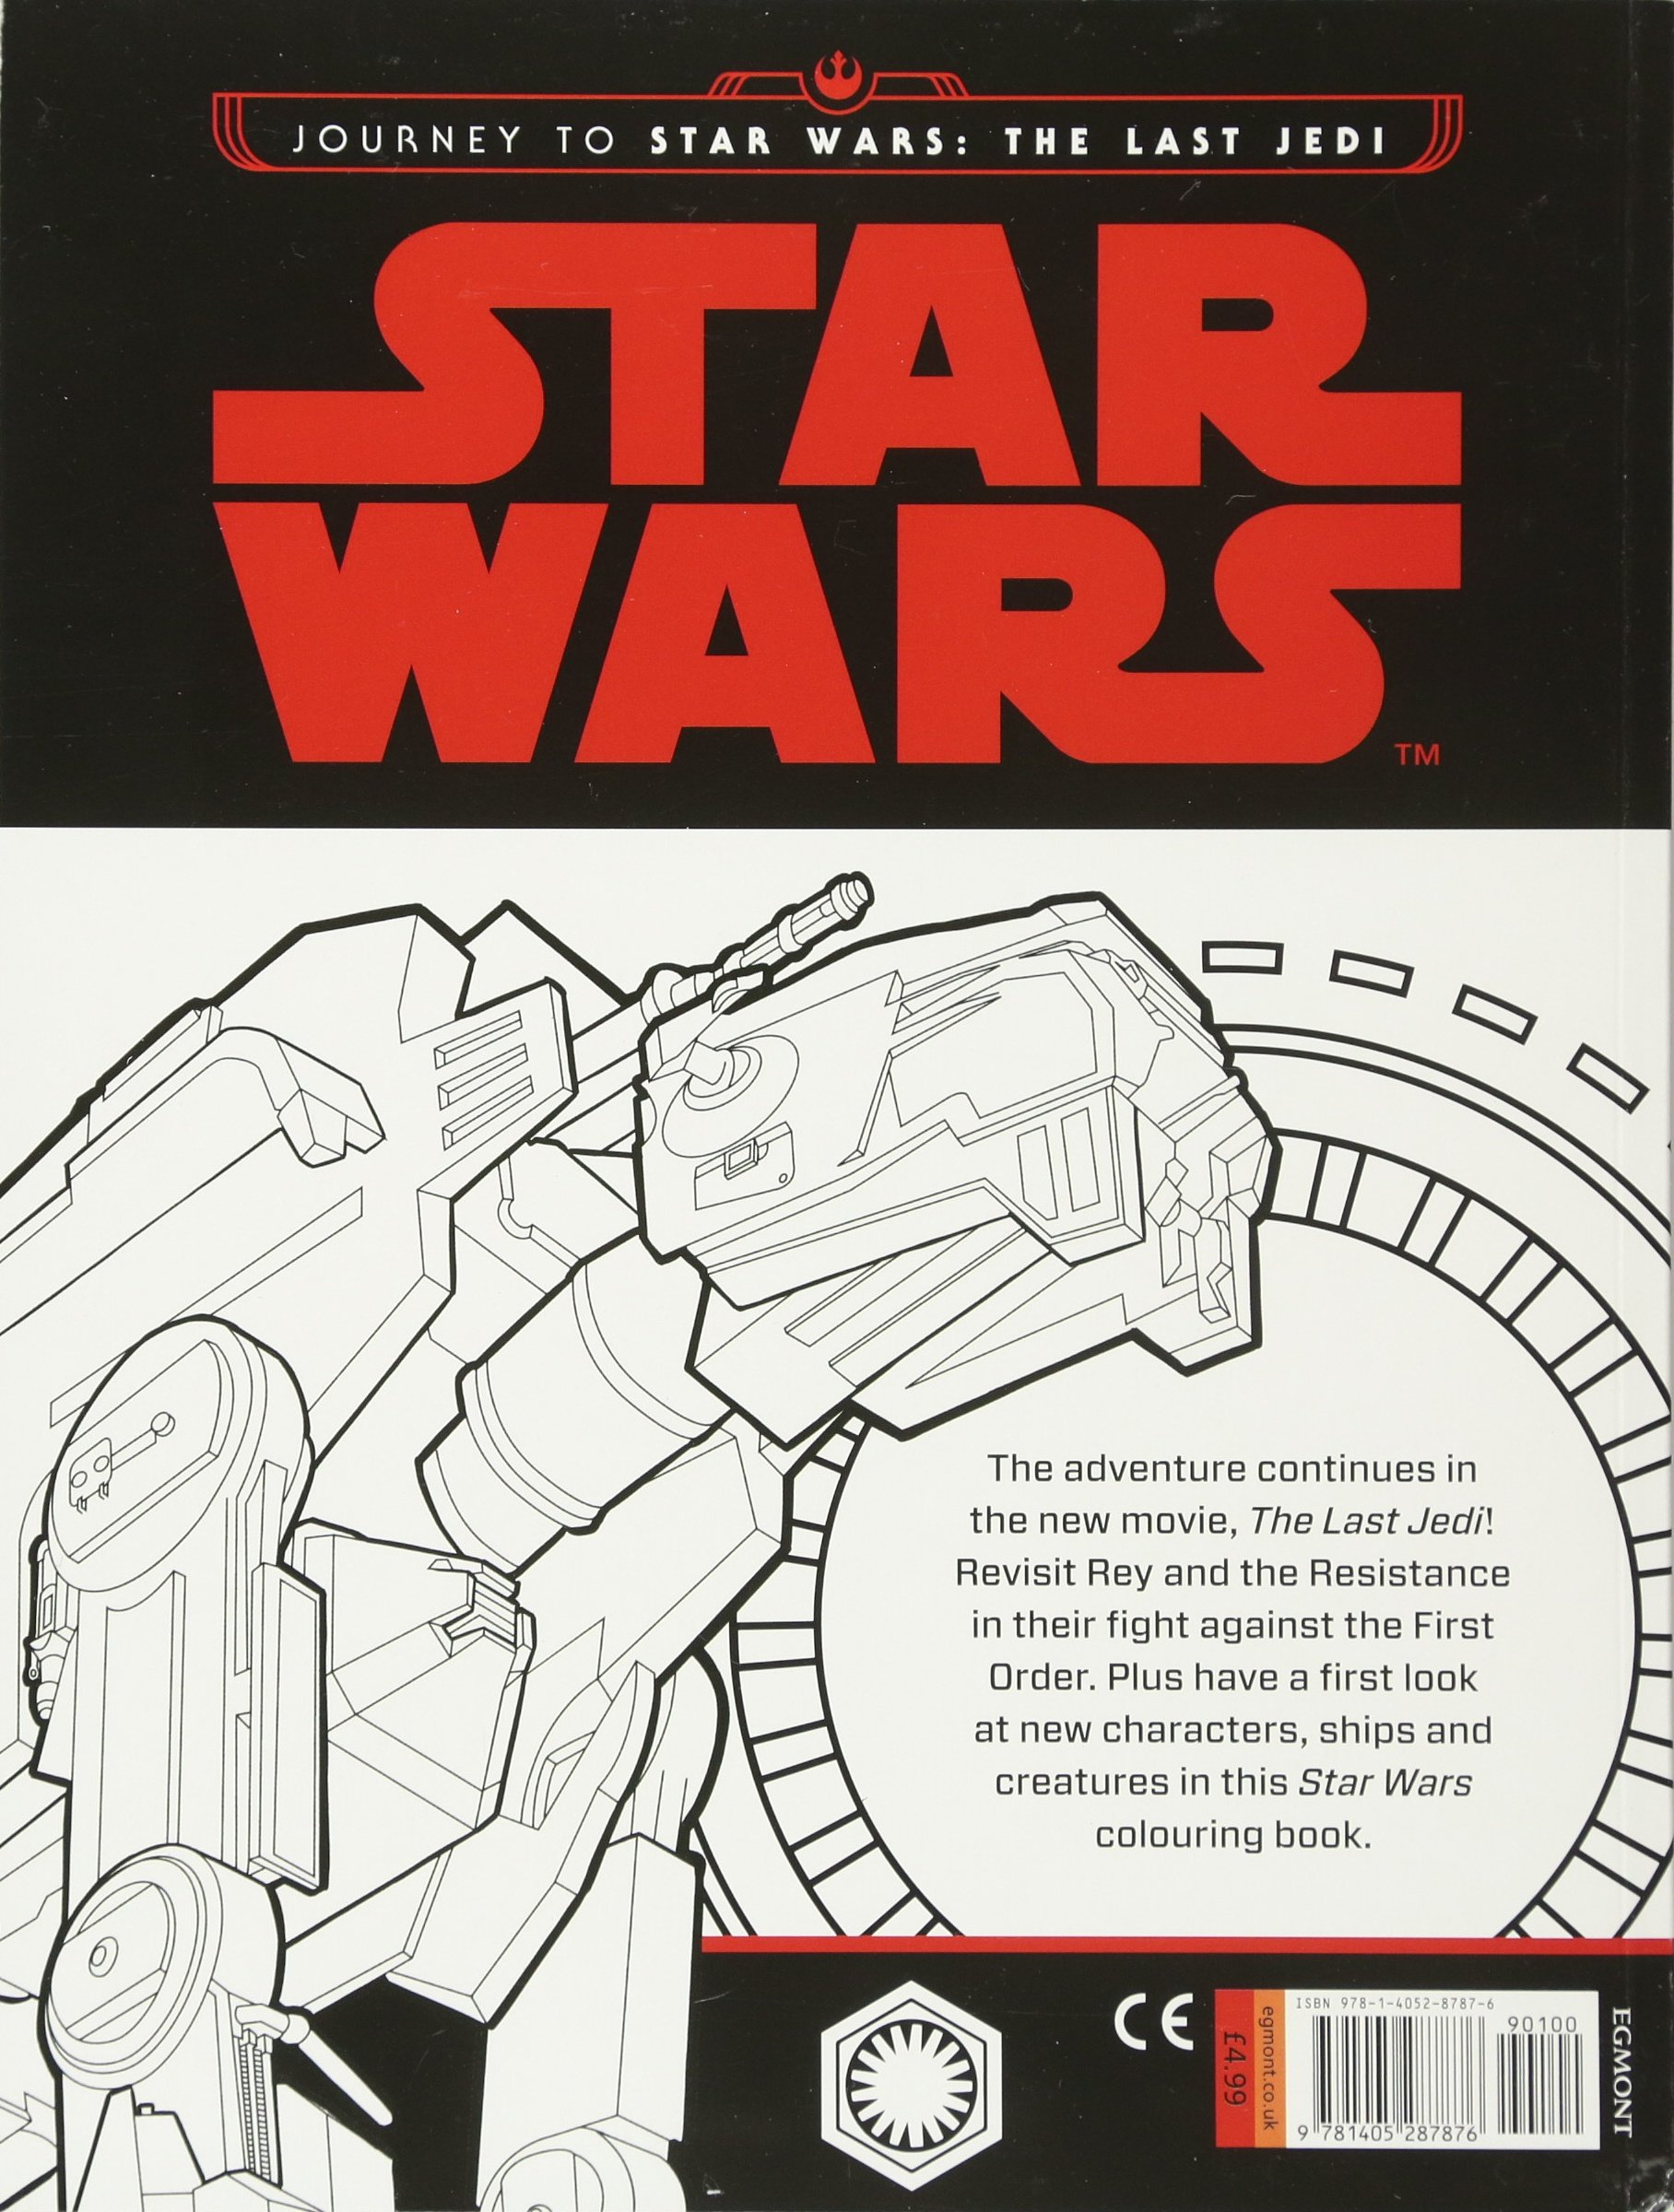 Star Wars Journey To The Last Jedi Colouring Book Amazon De Not Available Na Fremdsprachige Bucher